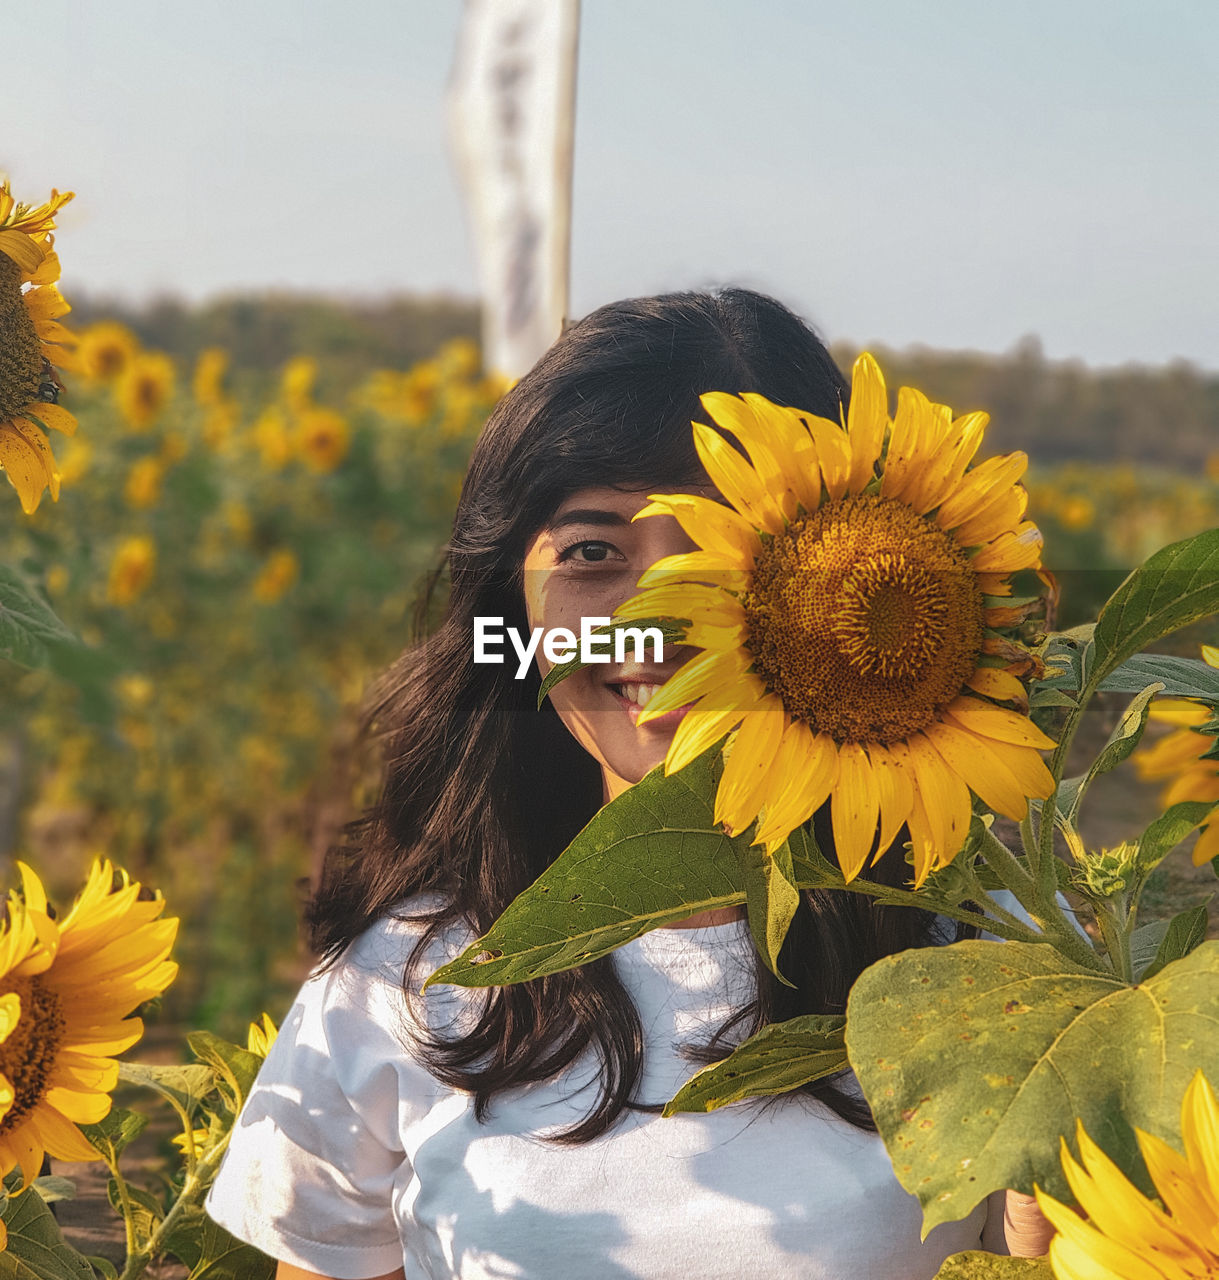 yellow, plant, flower, flowering plant, one person, young women, portrait, young adult, looking at camera, real people, leisure activity, nature, fragility, vulnerability, lifestyles, growth, beauty, freshness, beauty in nature, beautiful woman, hairstyle, hair, flower head, sunflower, outdoors